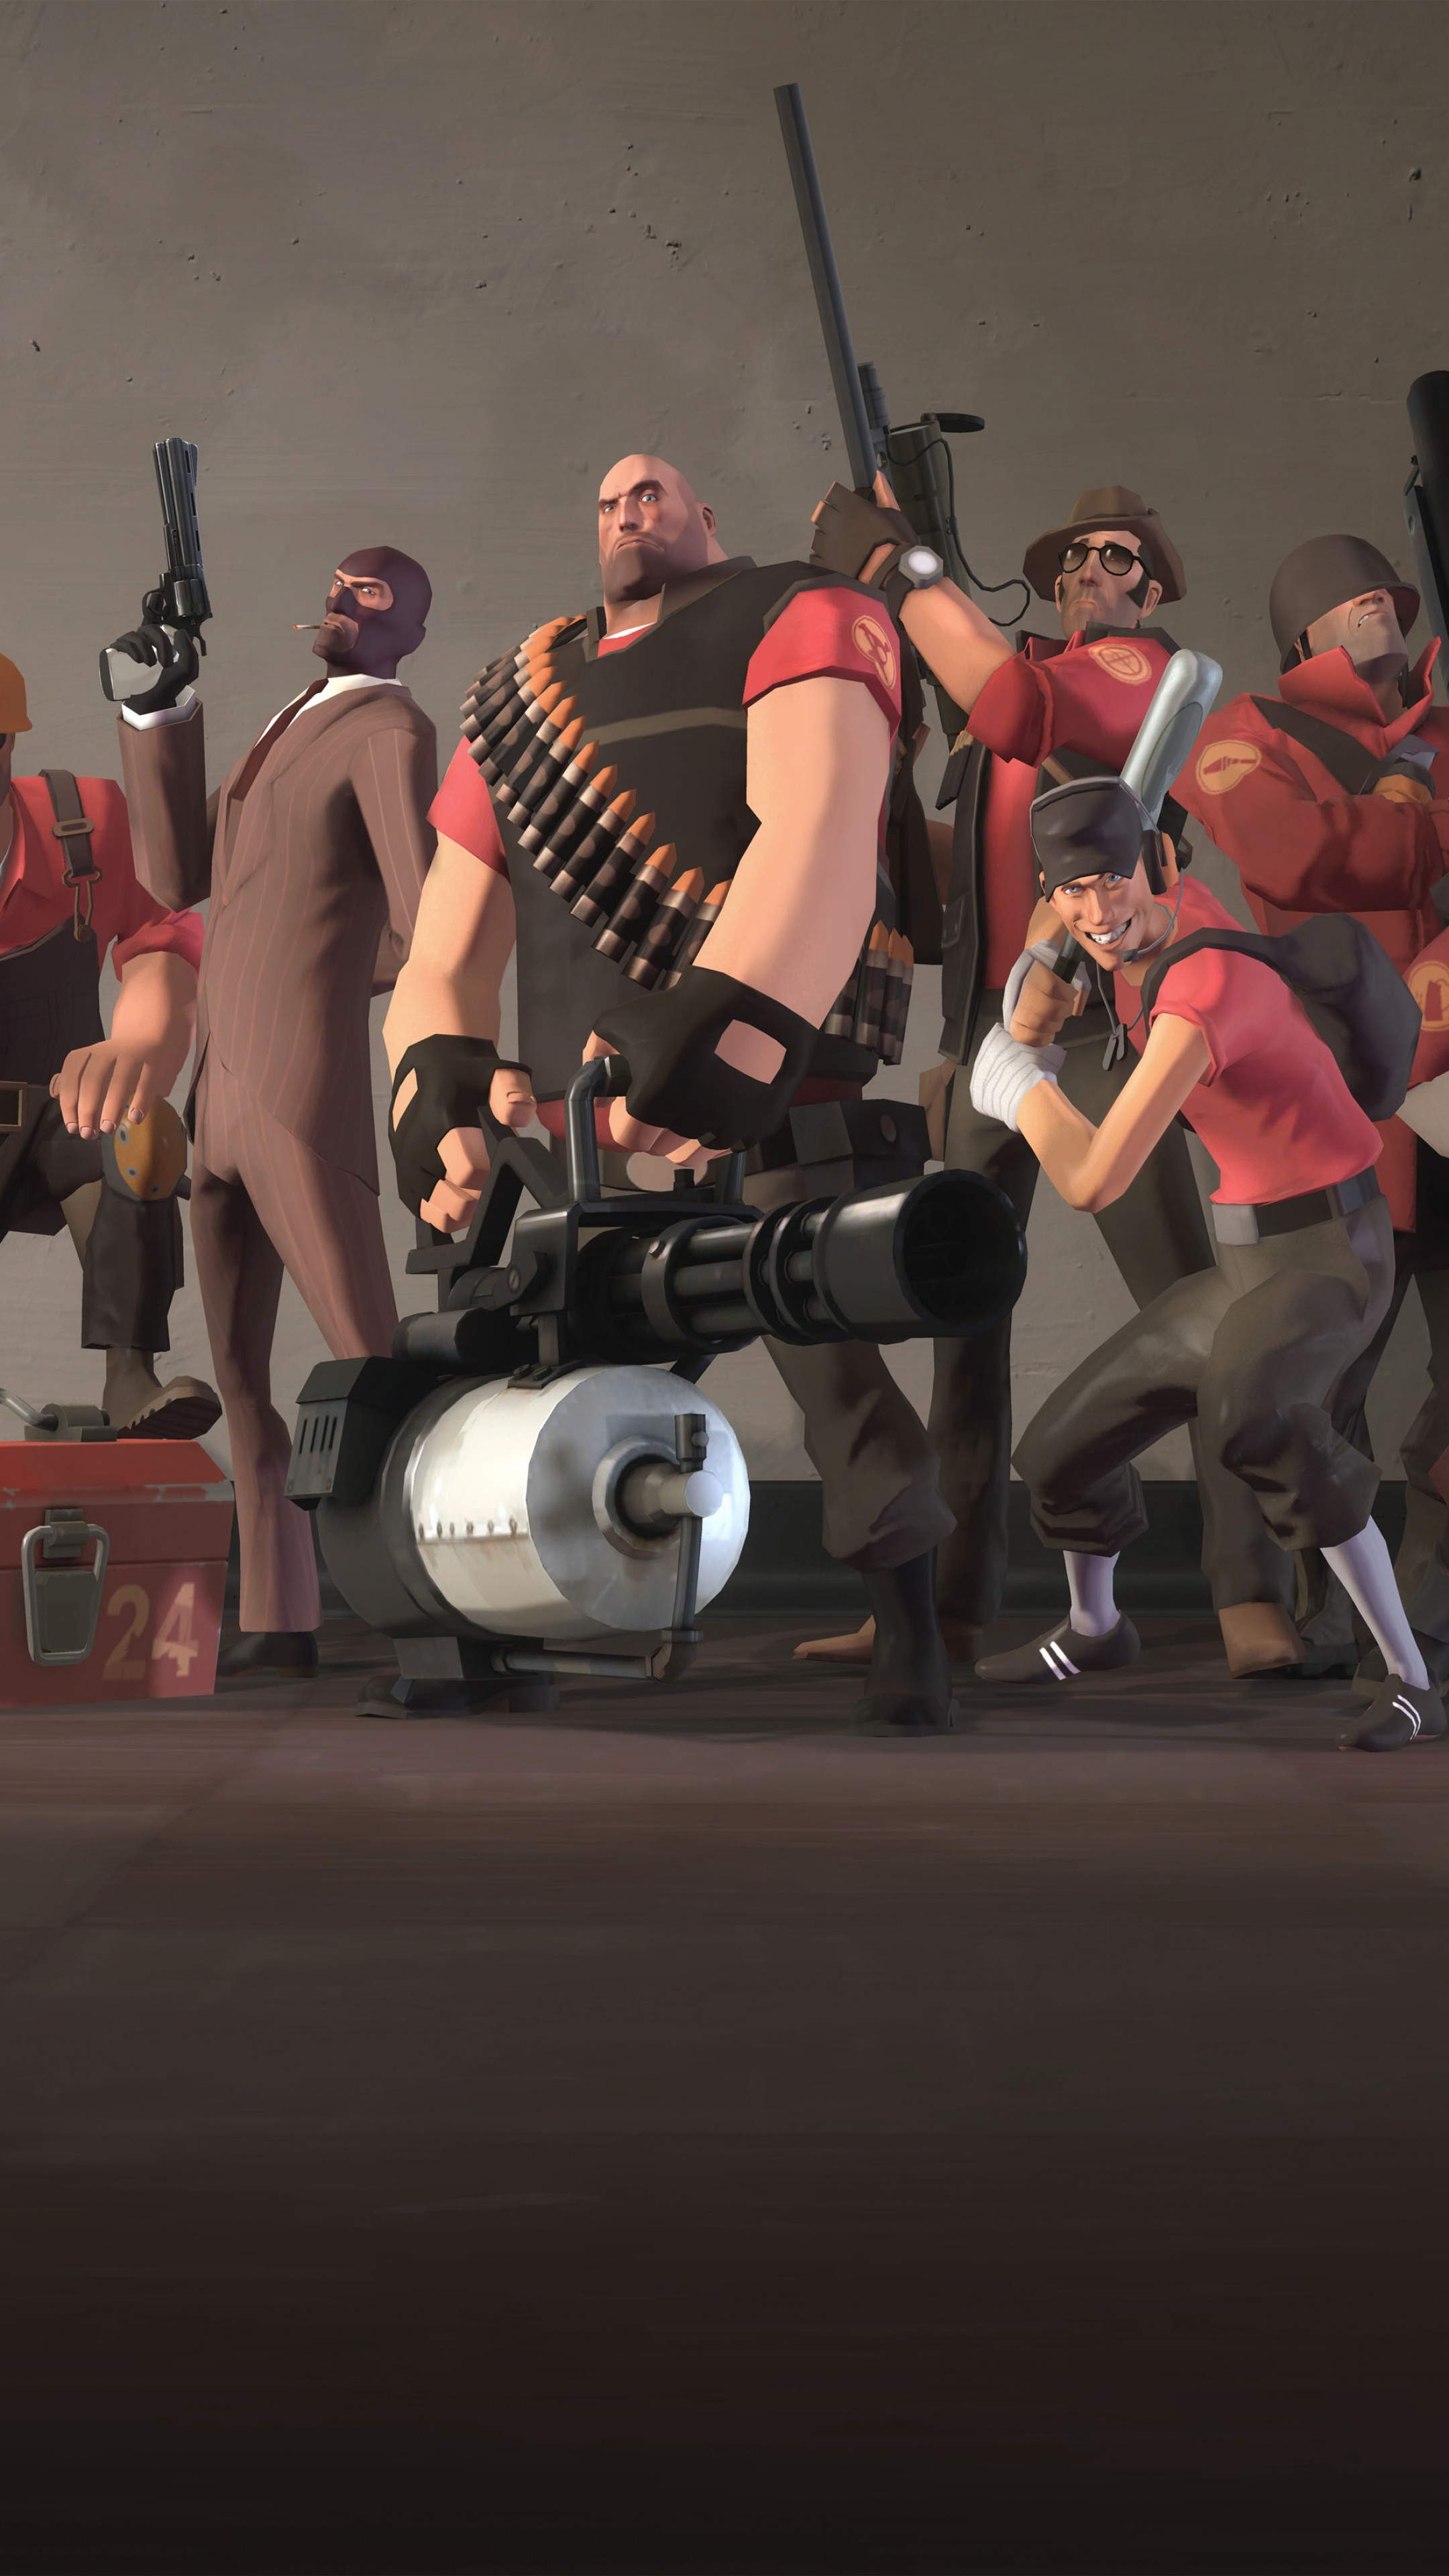 Wallpaper Team Fortress 2, TF2, FPS, All Characters